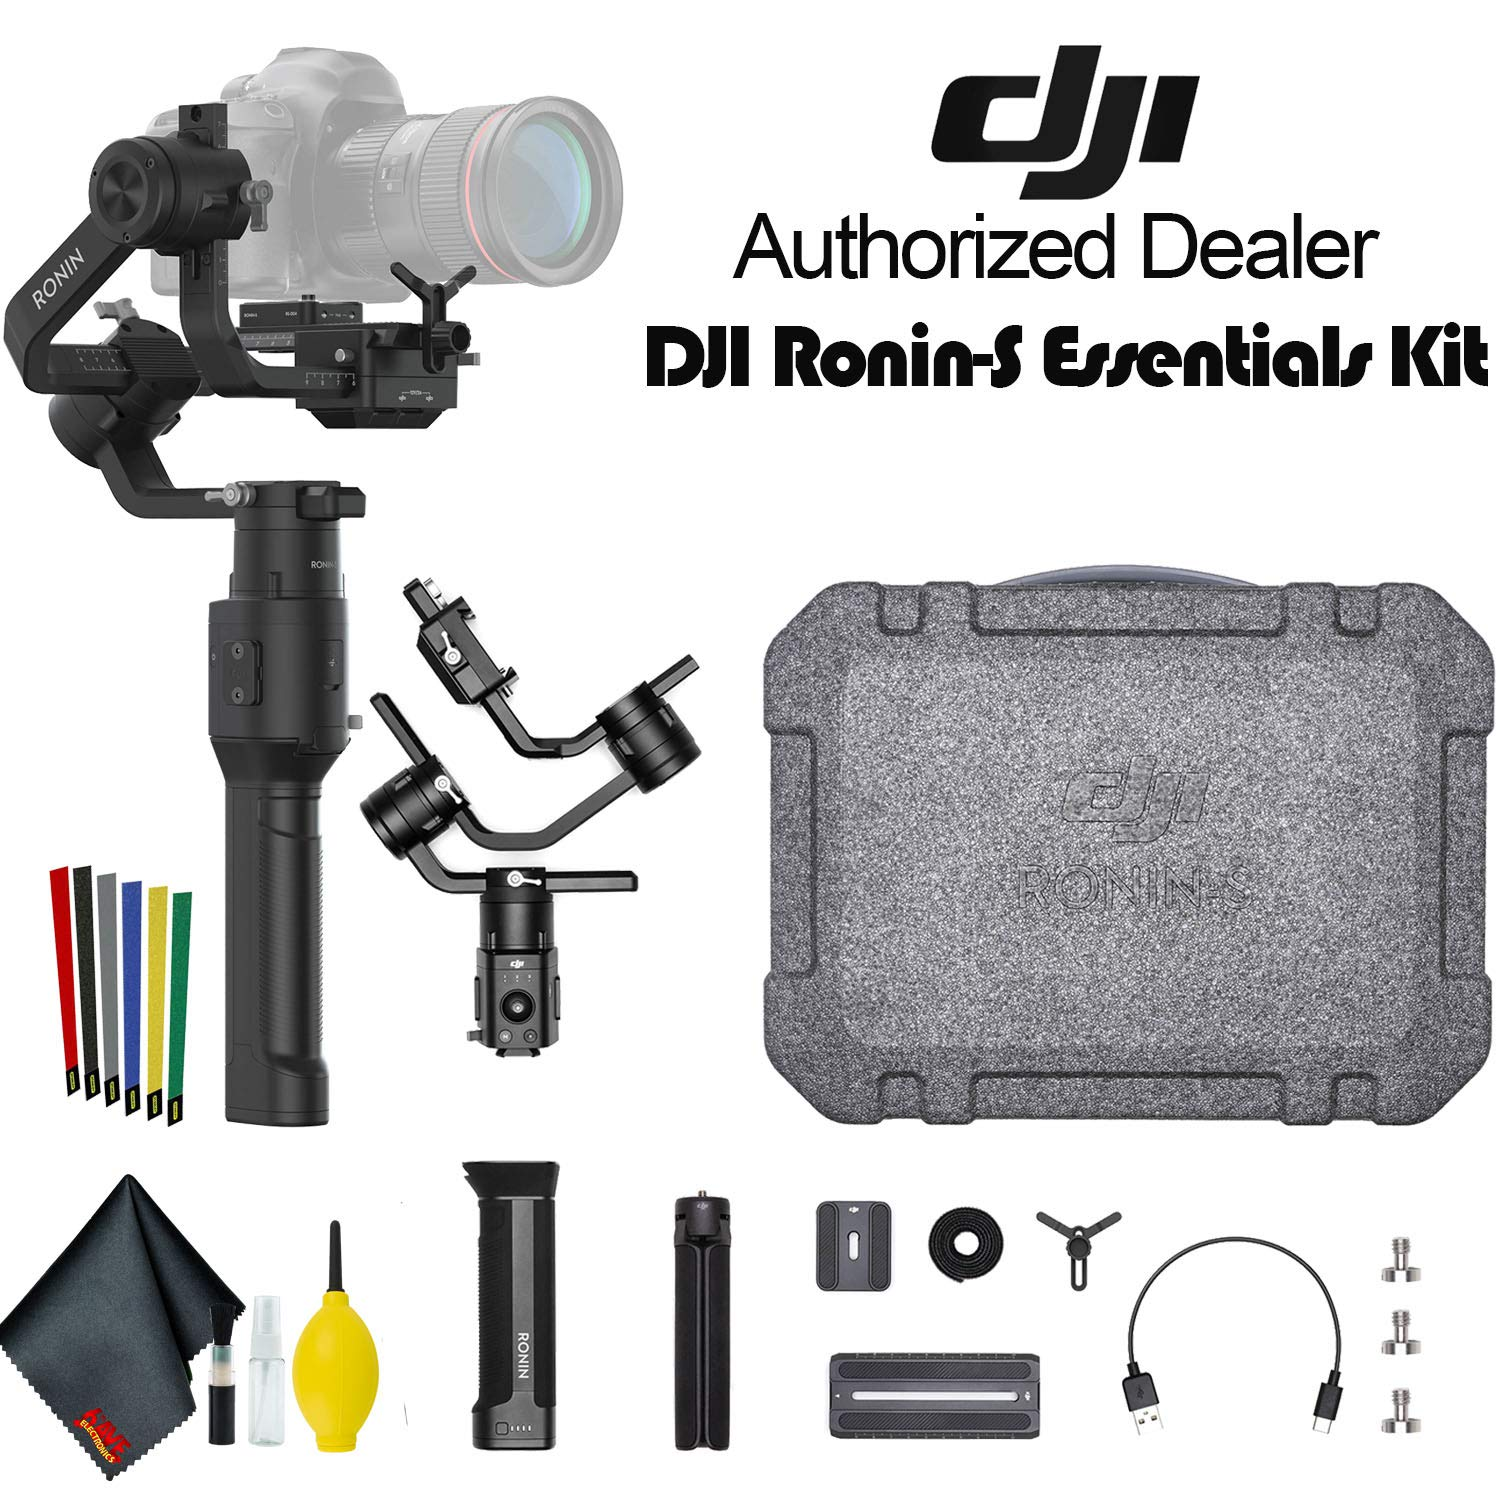 DJI Ronin-S Essentials Kit 3-Axis Gimbal Stabilizer for Mirrorless and DSLR Cameras by DJI